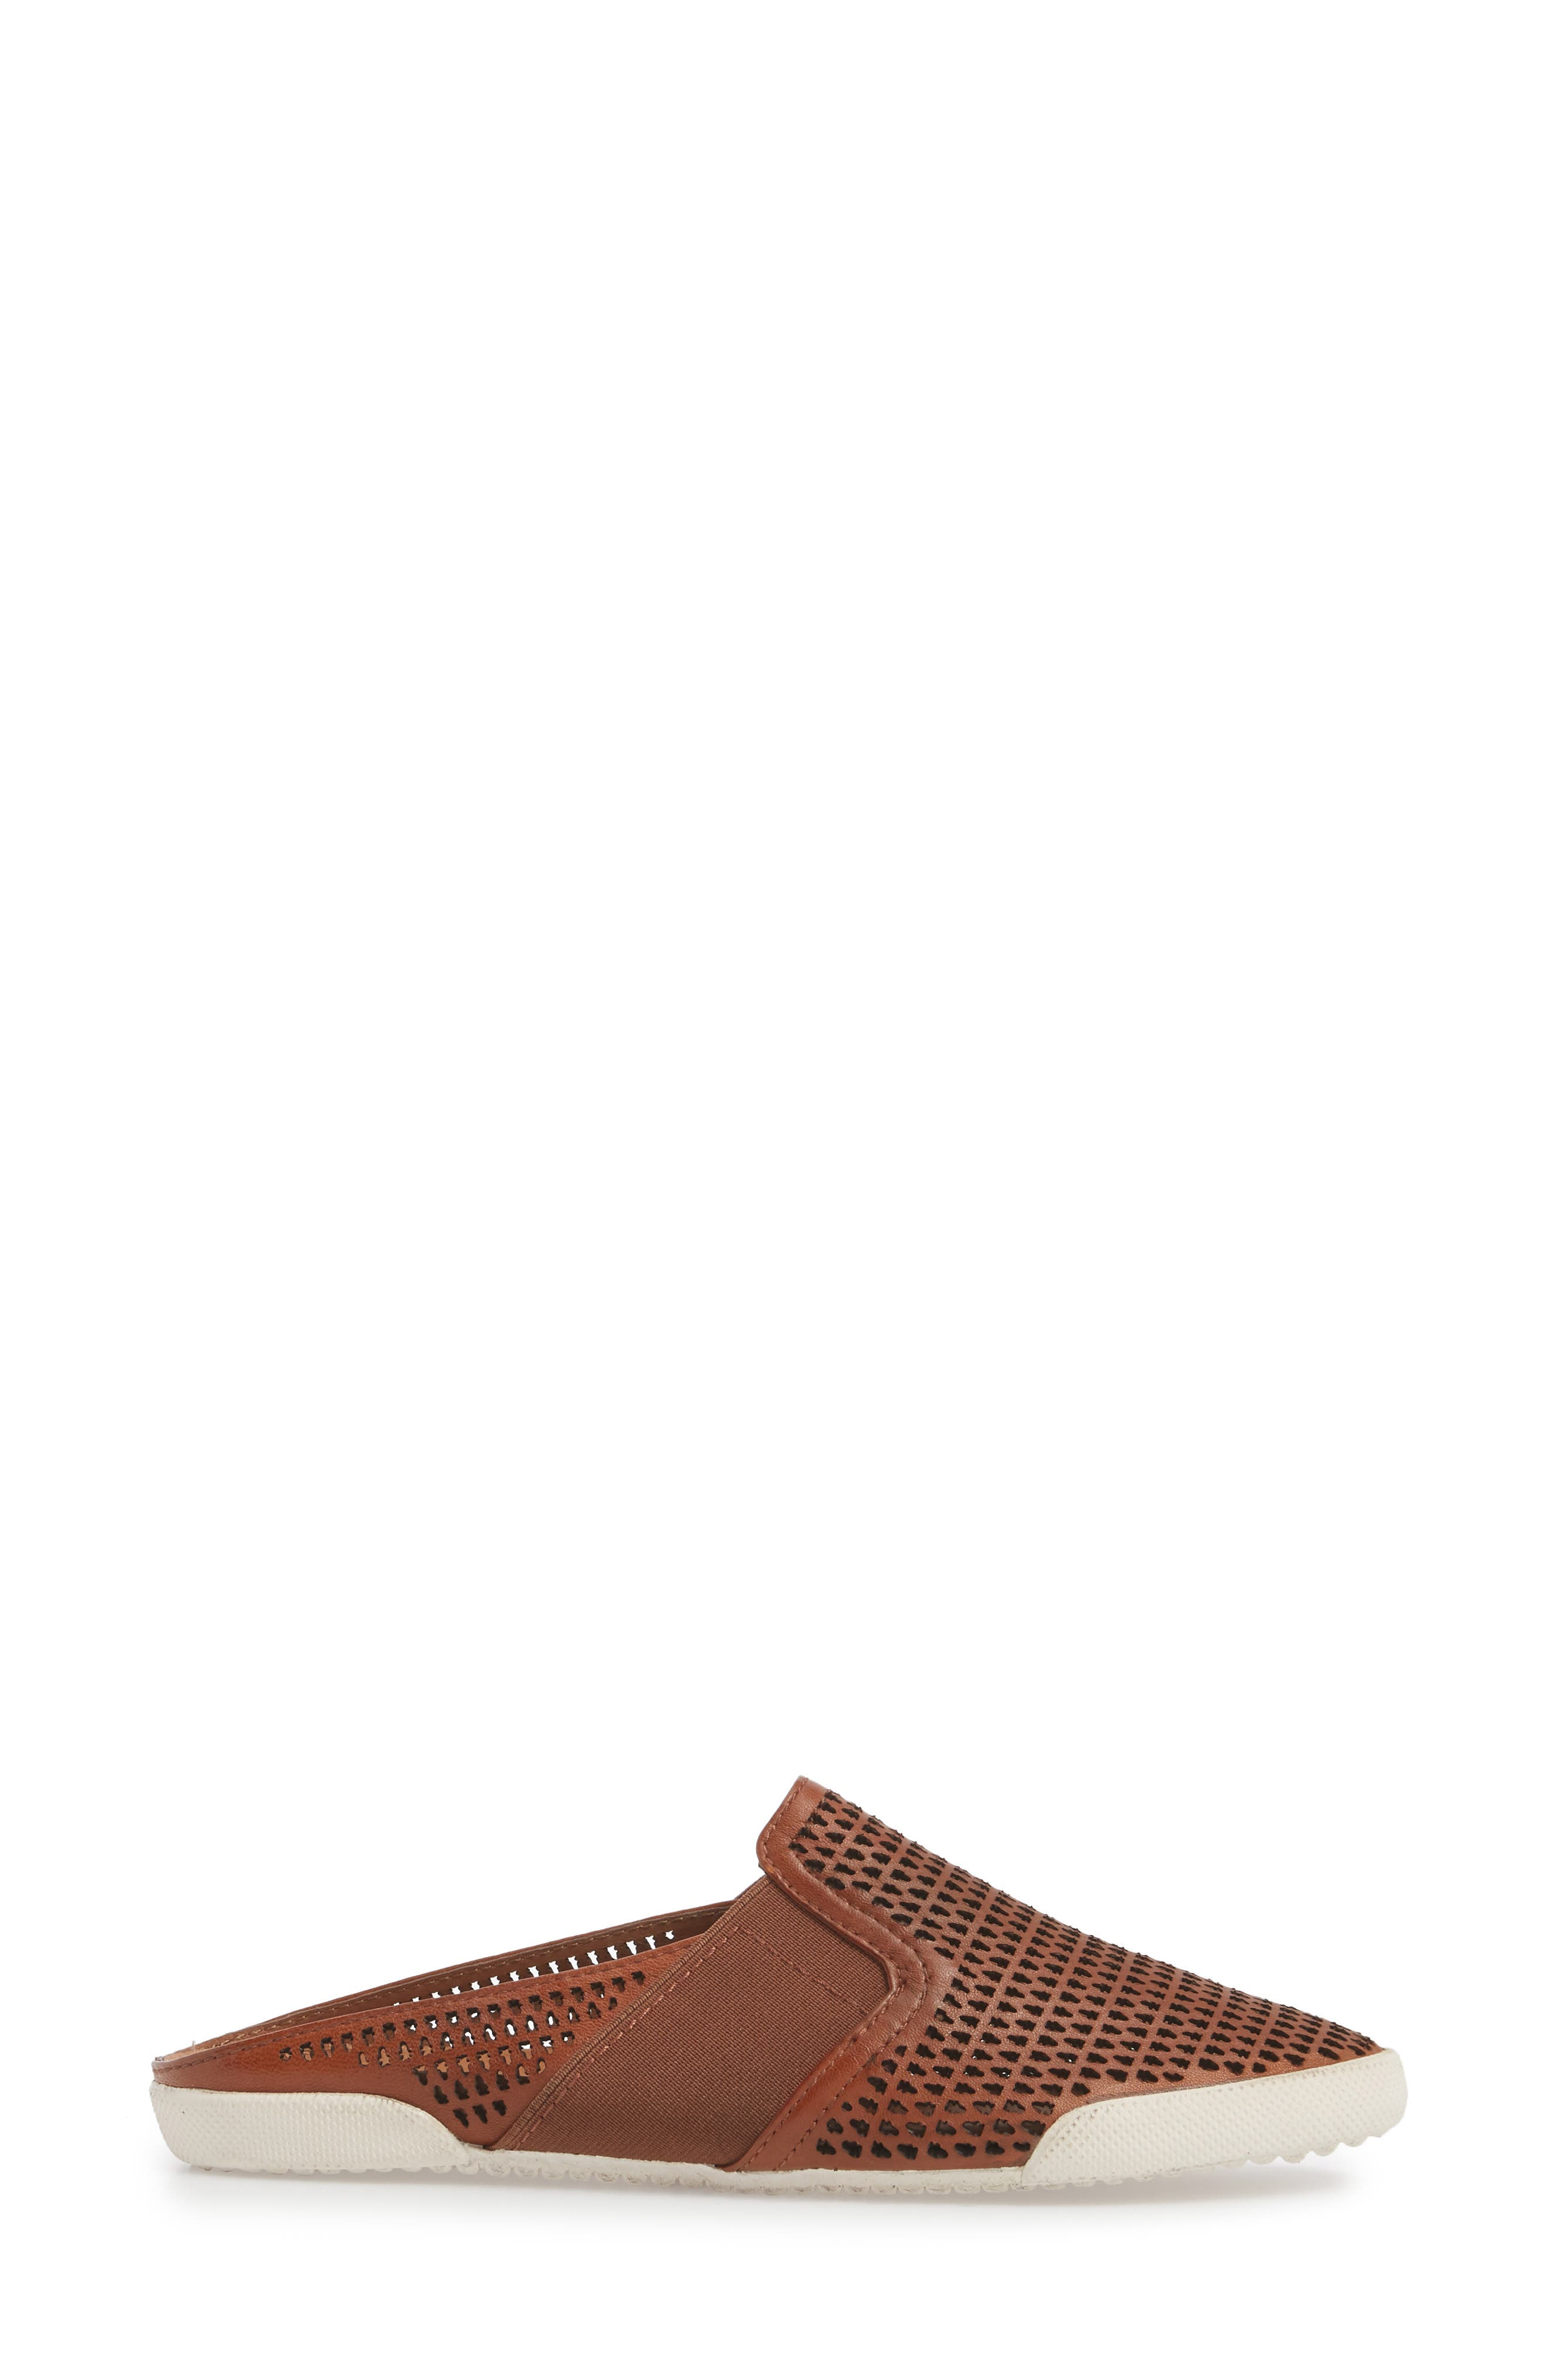 Melanie Perforated Mule,                             Alternate thumbnail 3, color,                             Cognac Leather